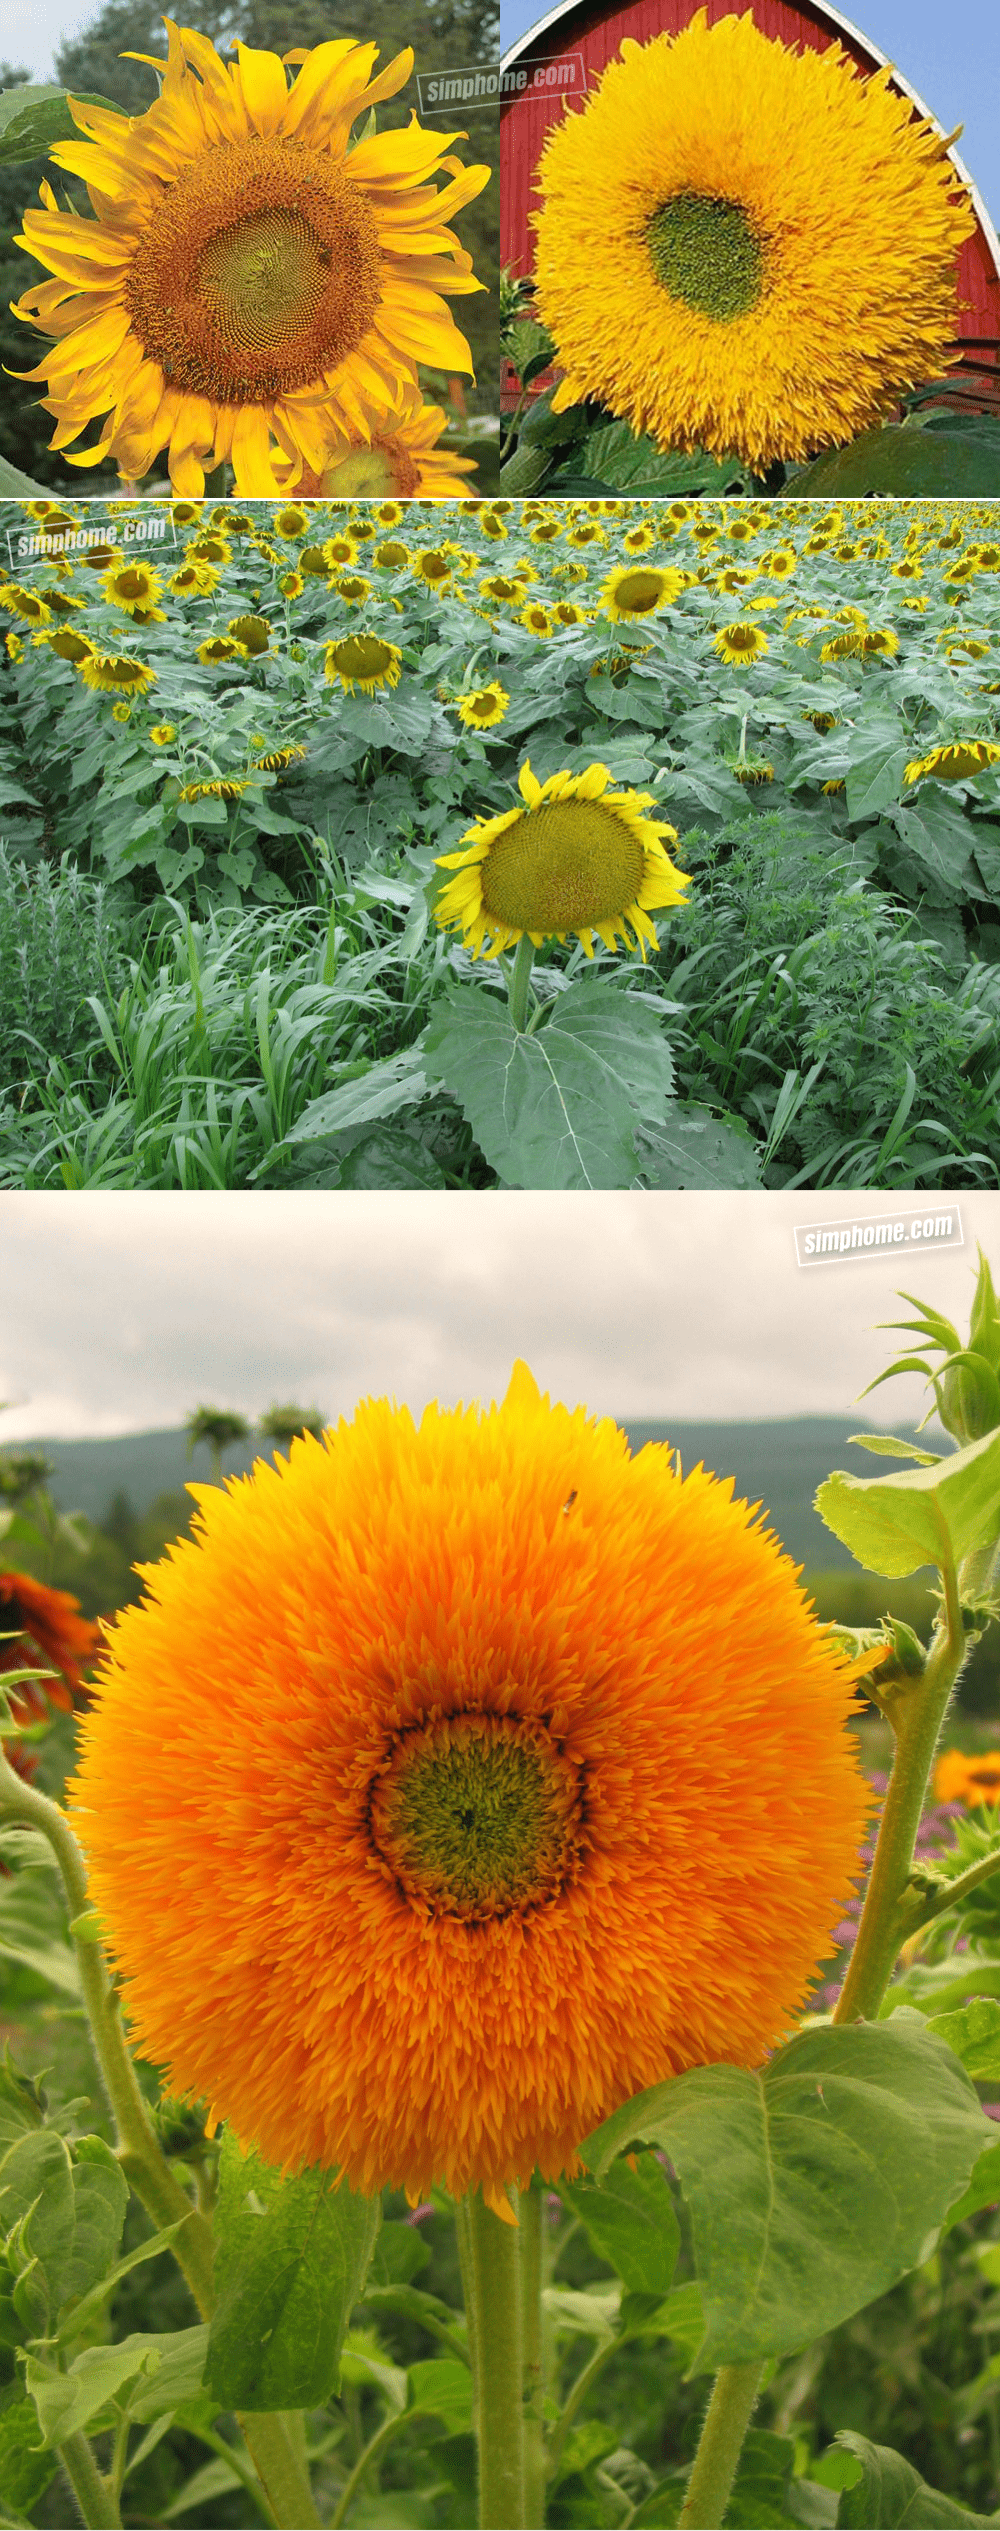 Simphome.com .1. Complete your garden with this Low Maintenance Sunflowers